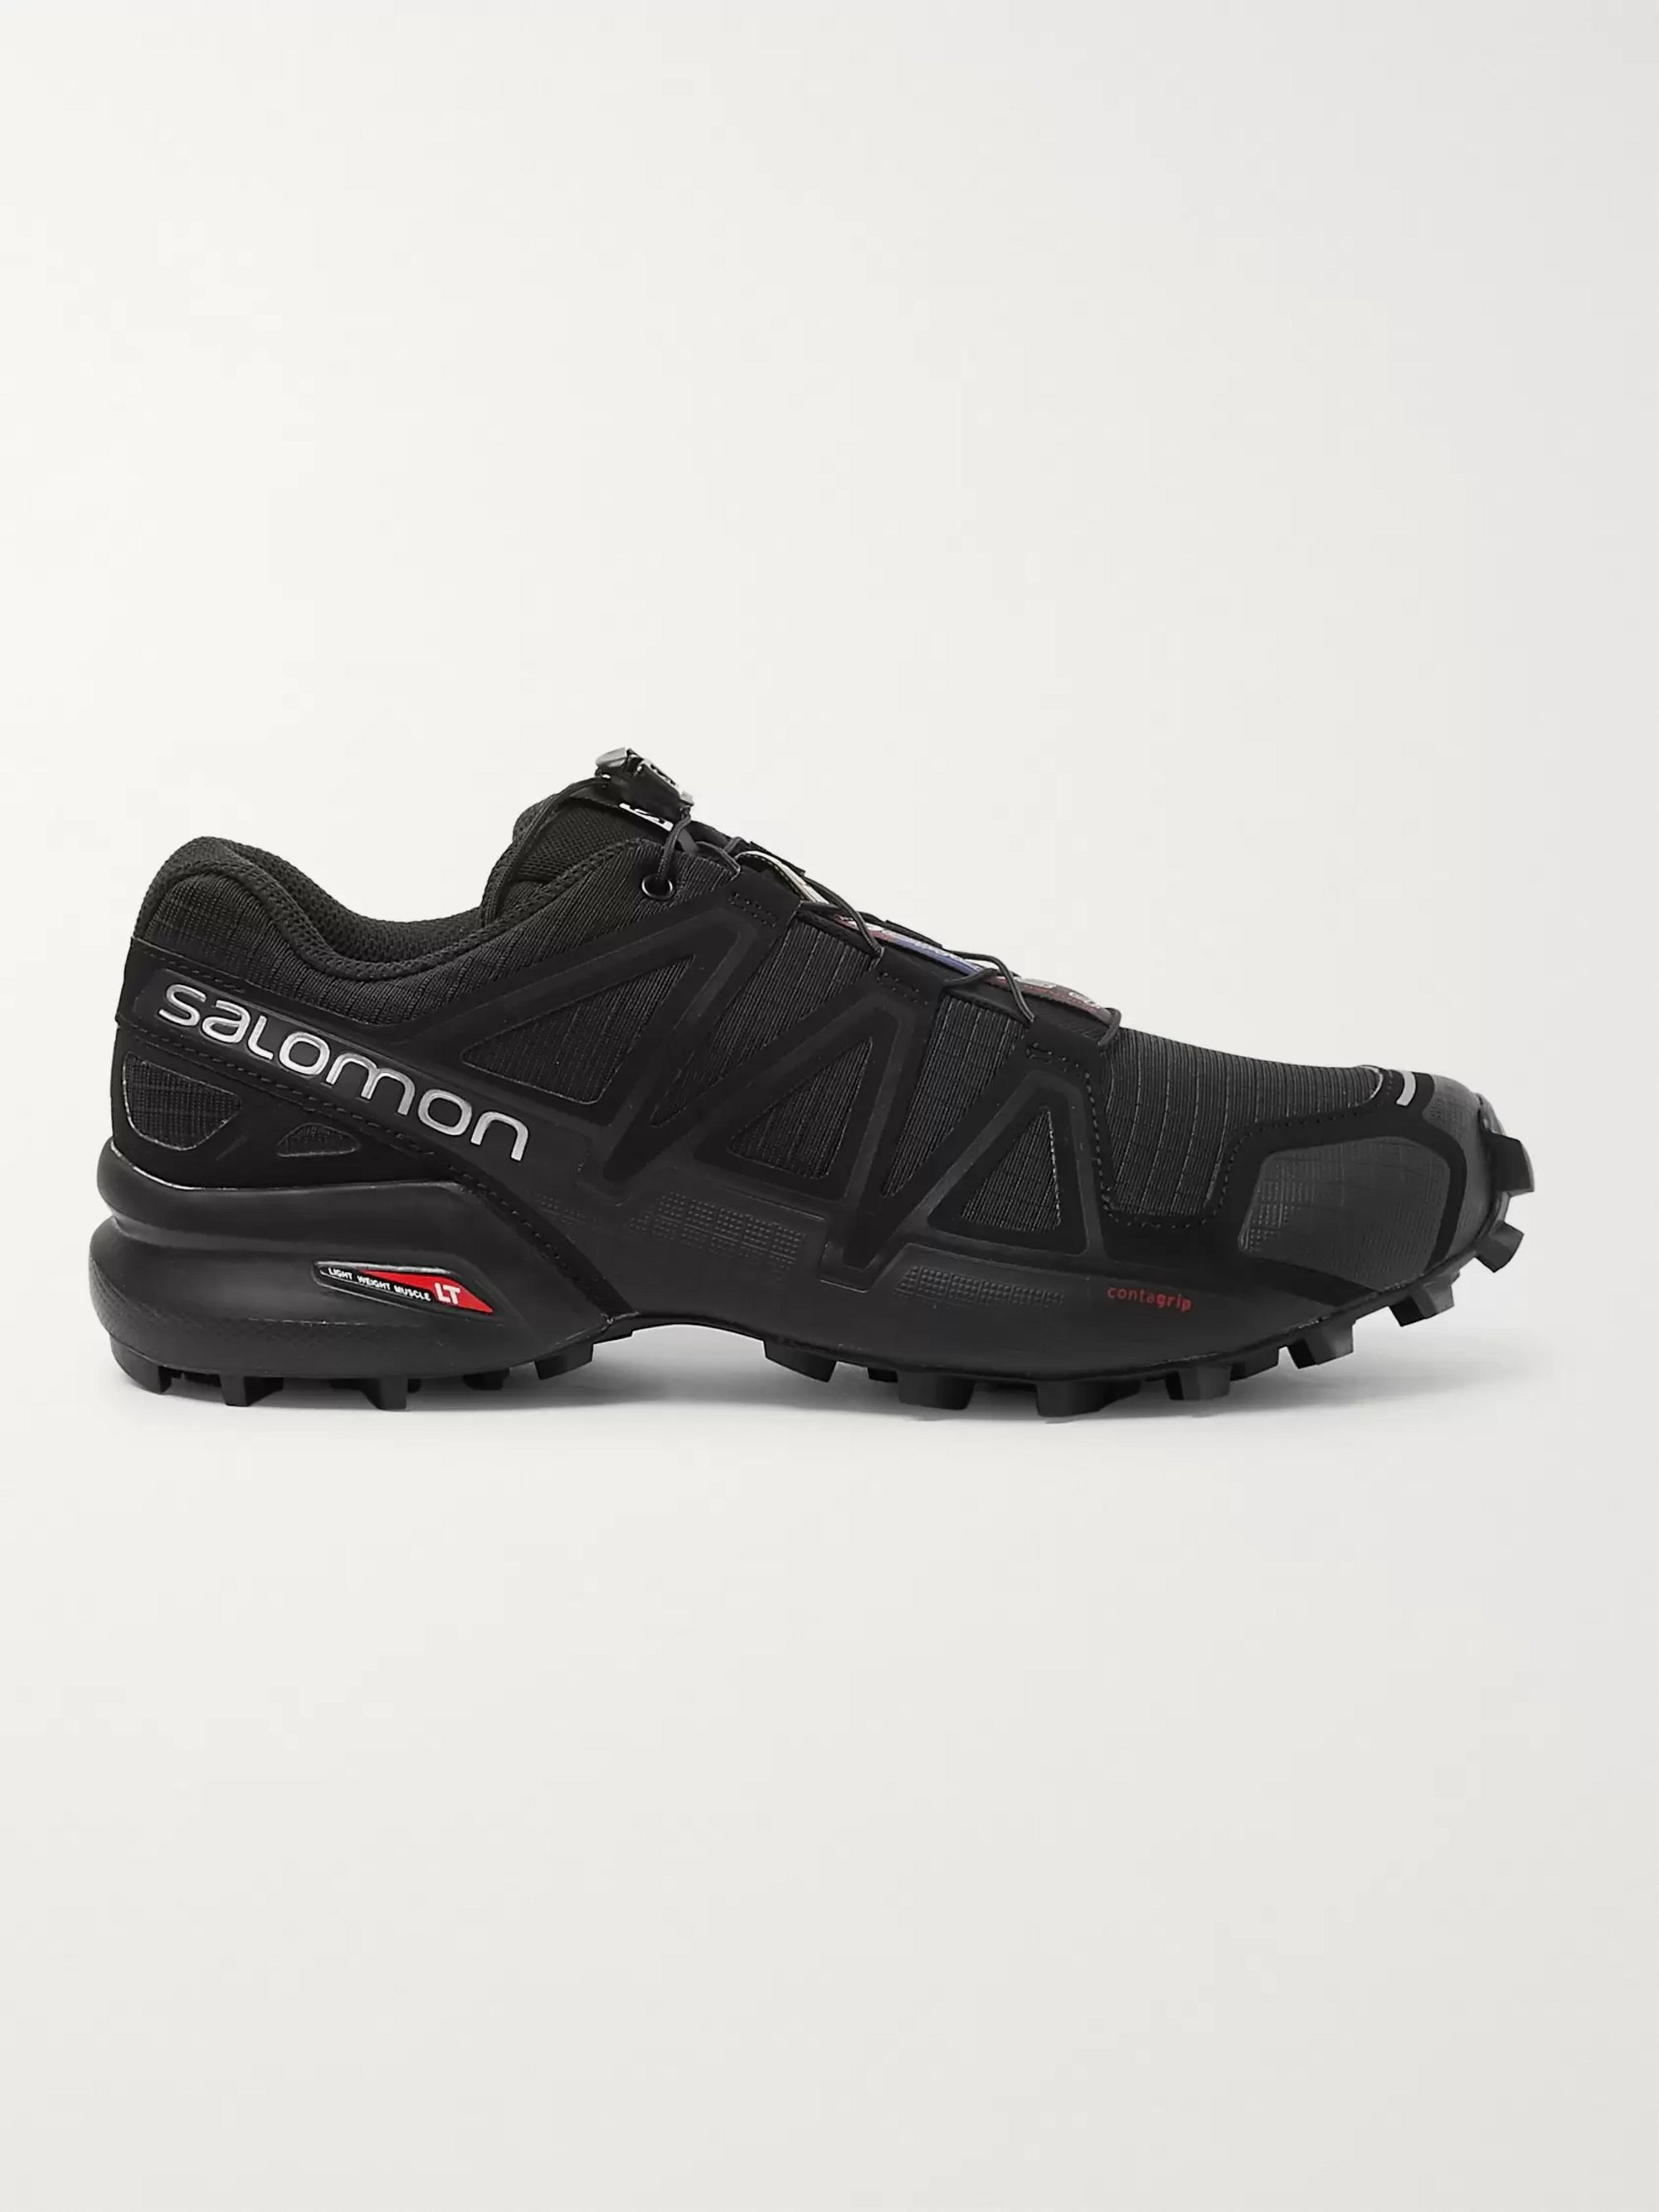 New Salomon Trail Shoes Available – Run With Us